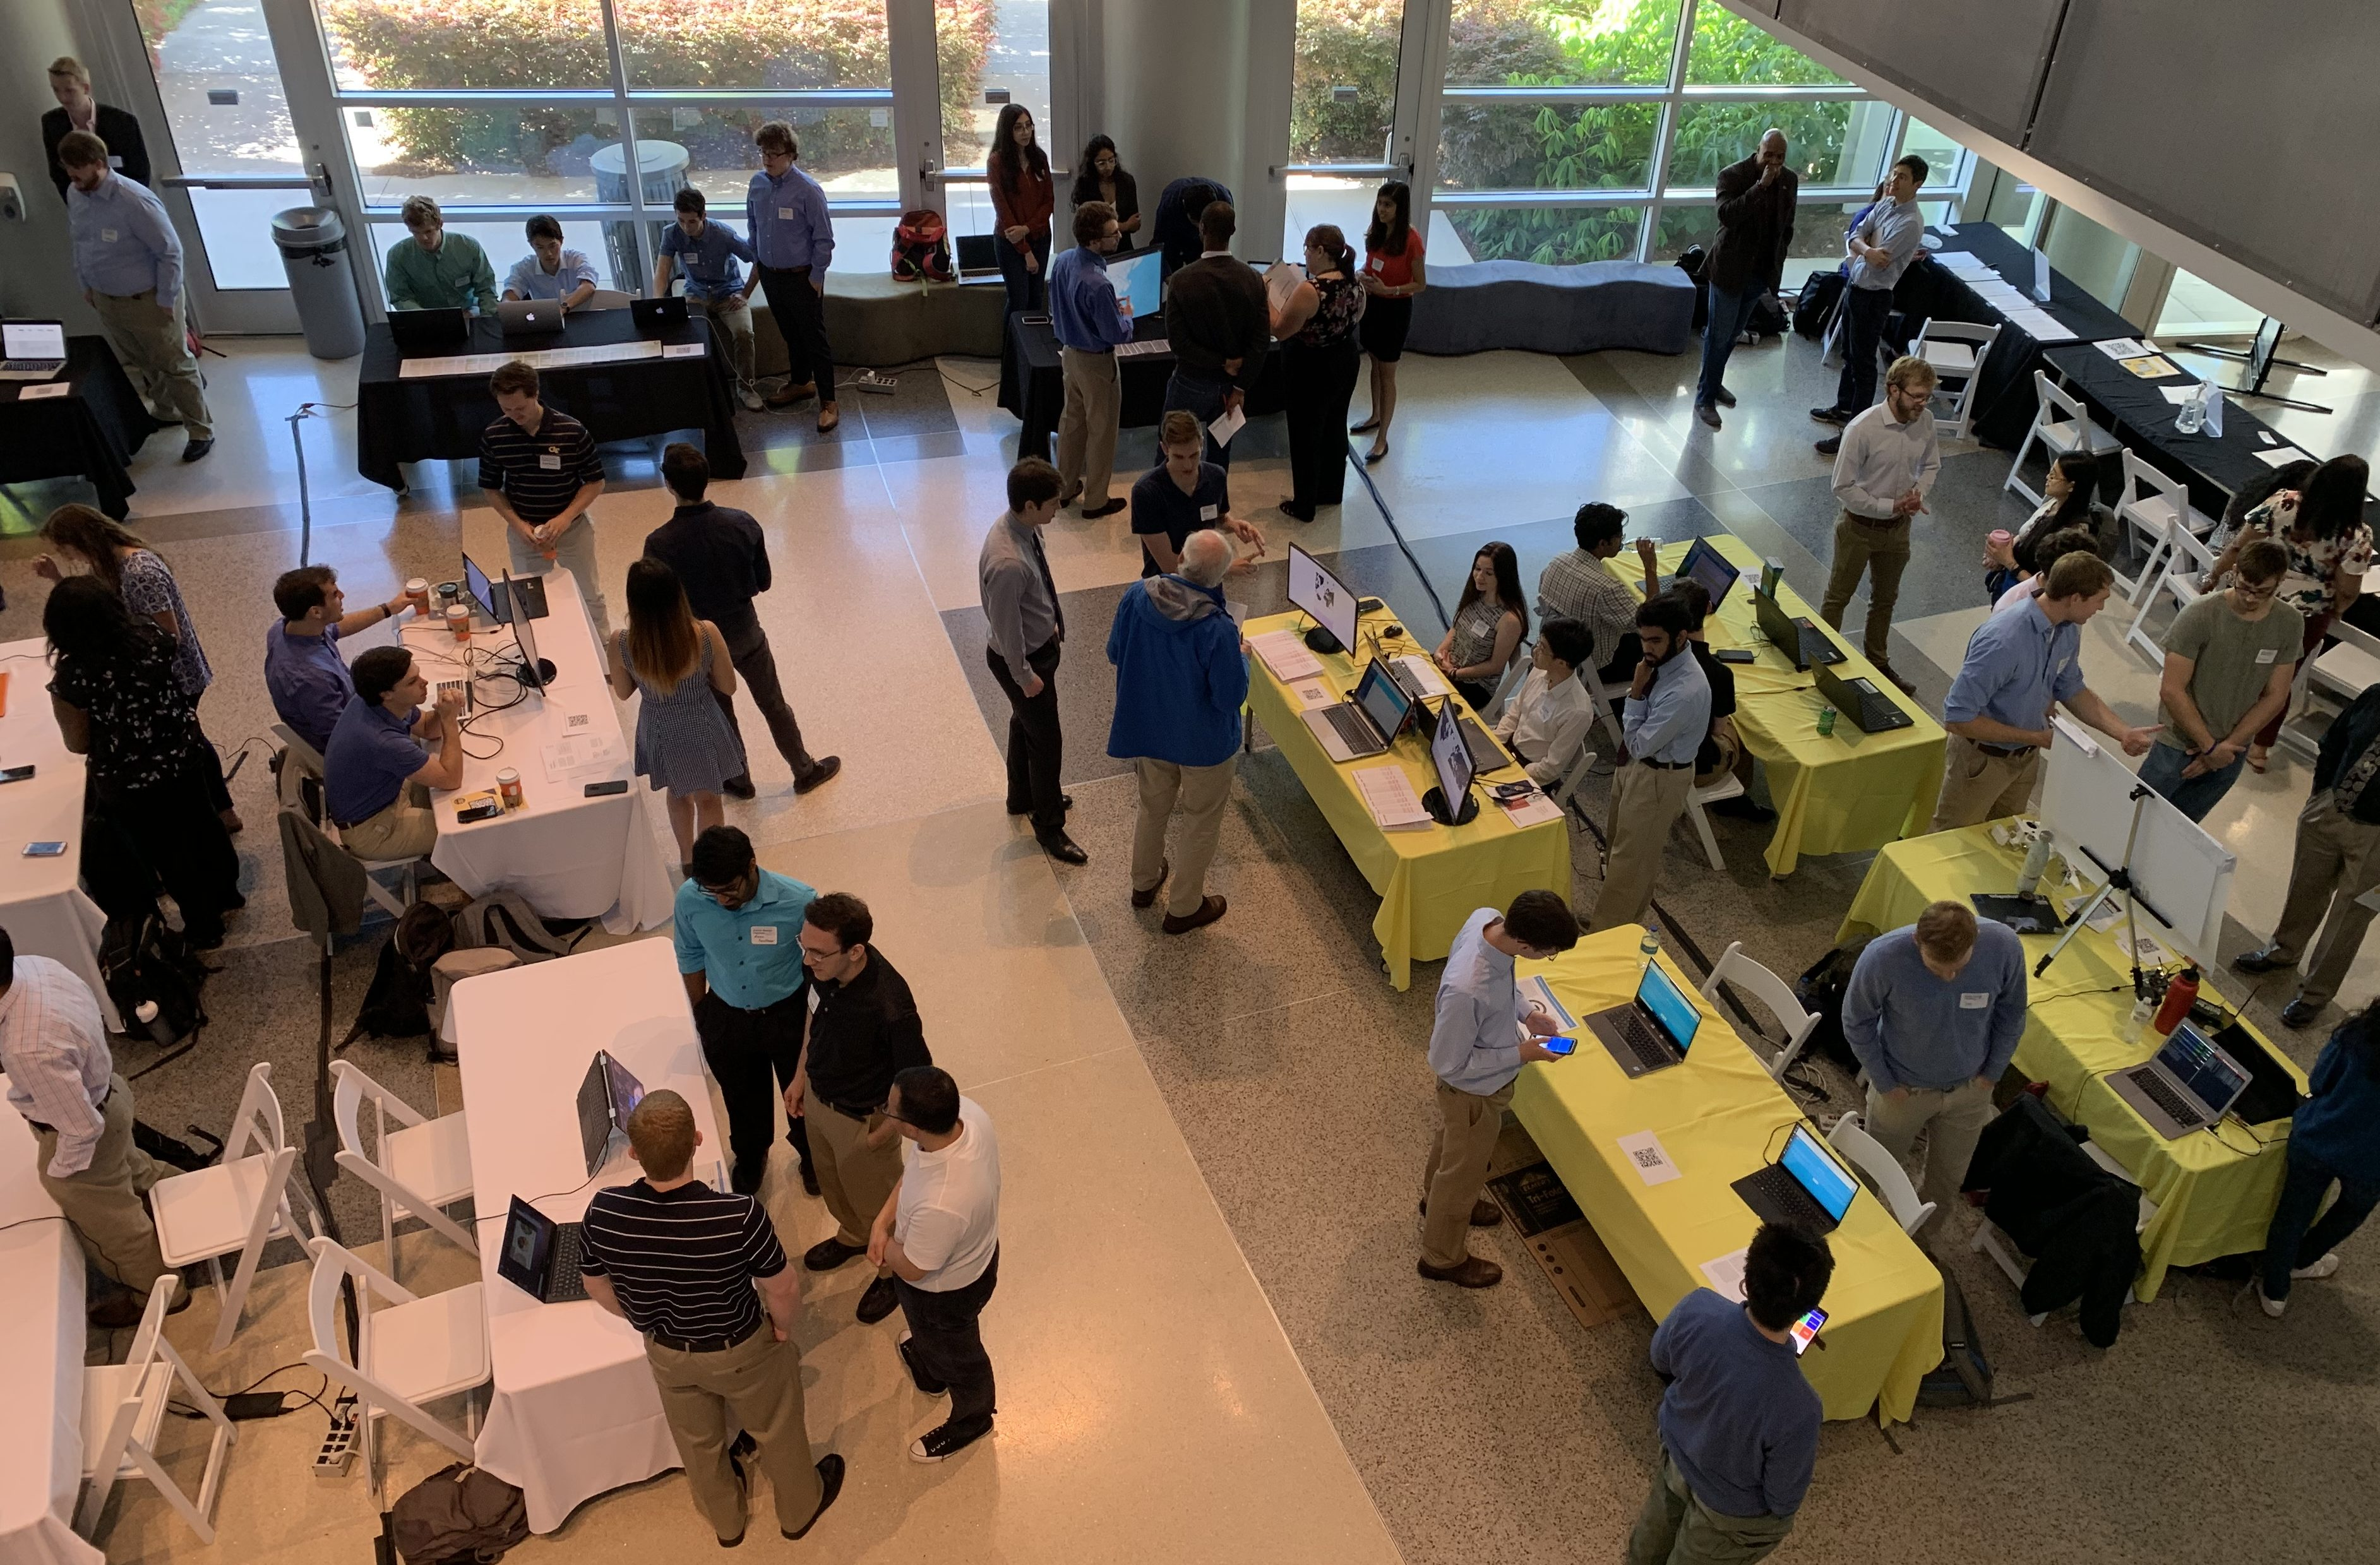 Shot from the second floor of students beginning to set up table displays on the first floor at the Spring 2019 Expo.